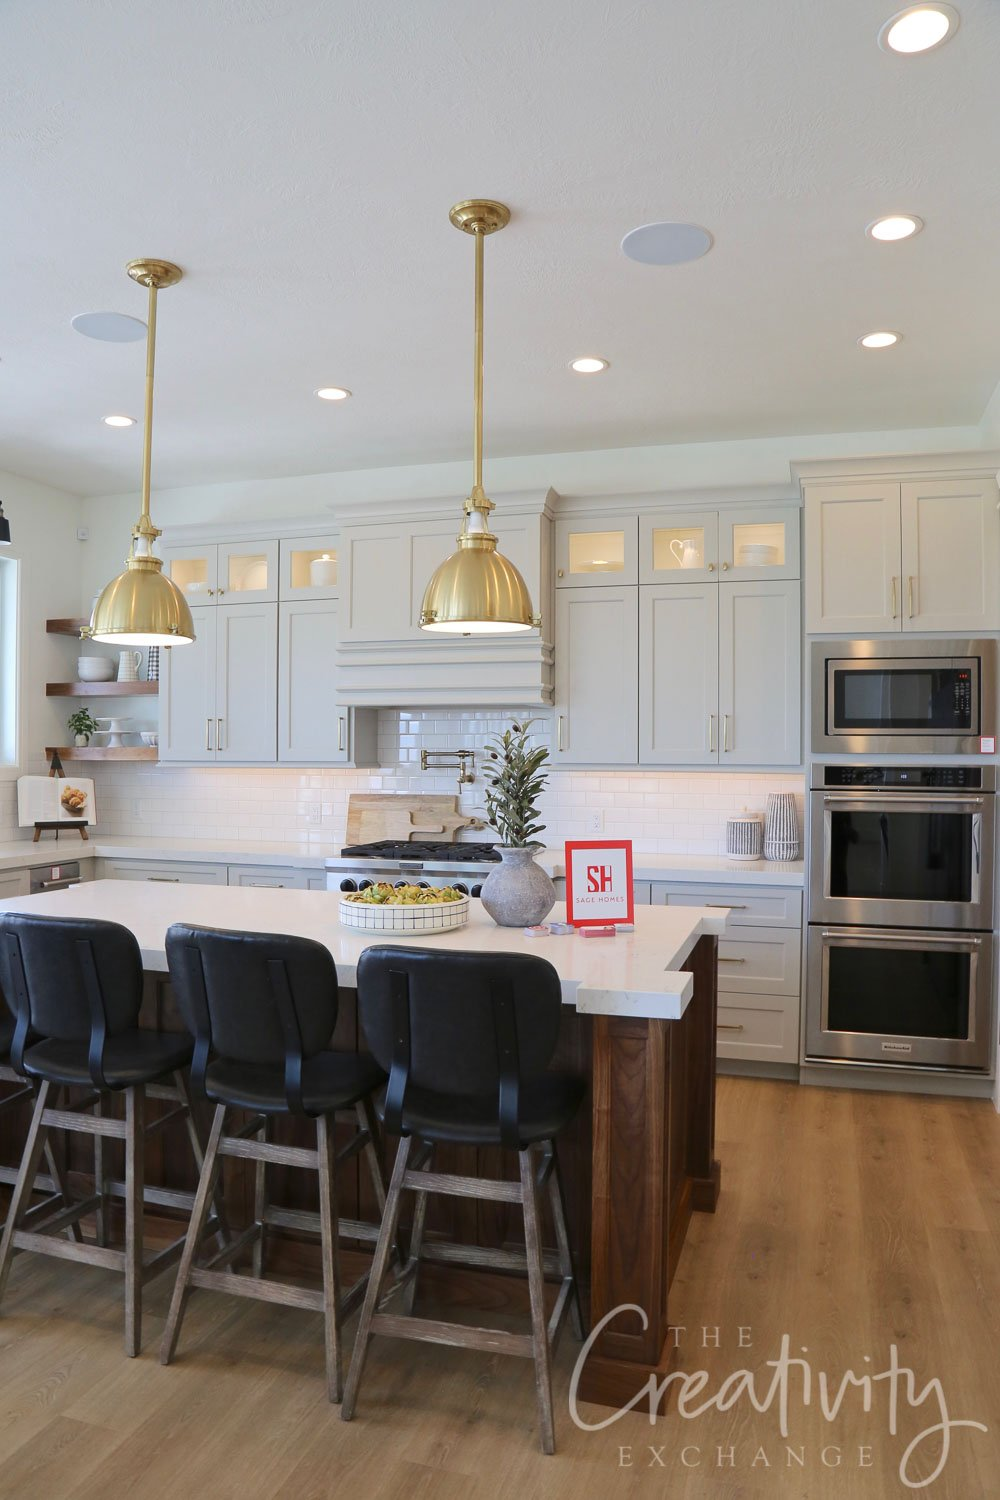 Kitchen Cabinetry is Sherwin Williams Repose Gray